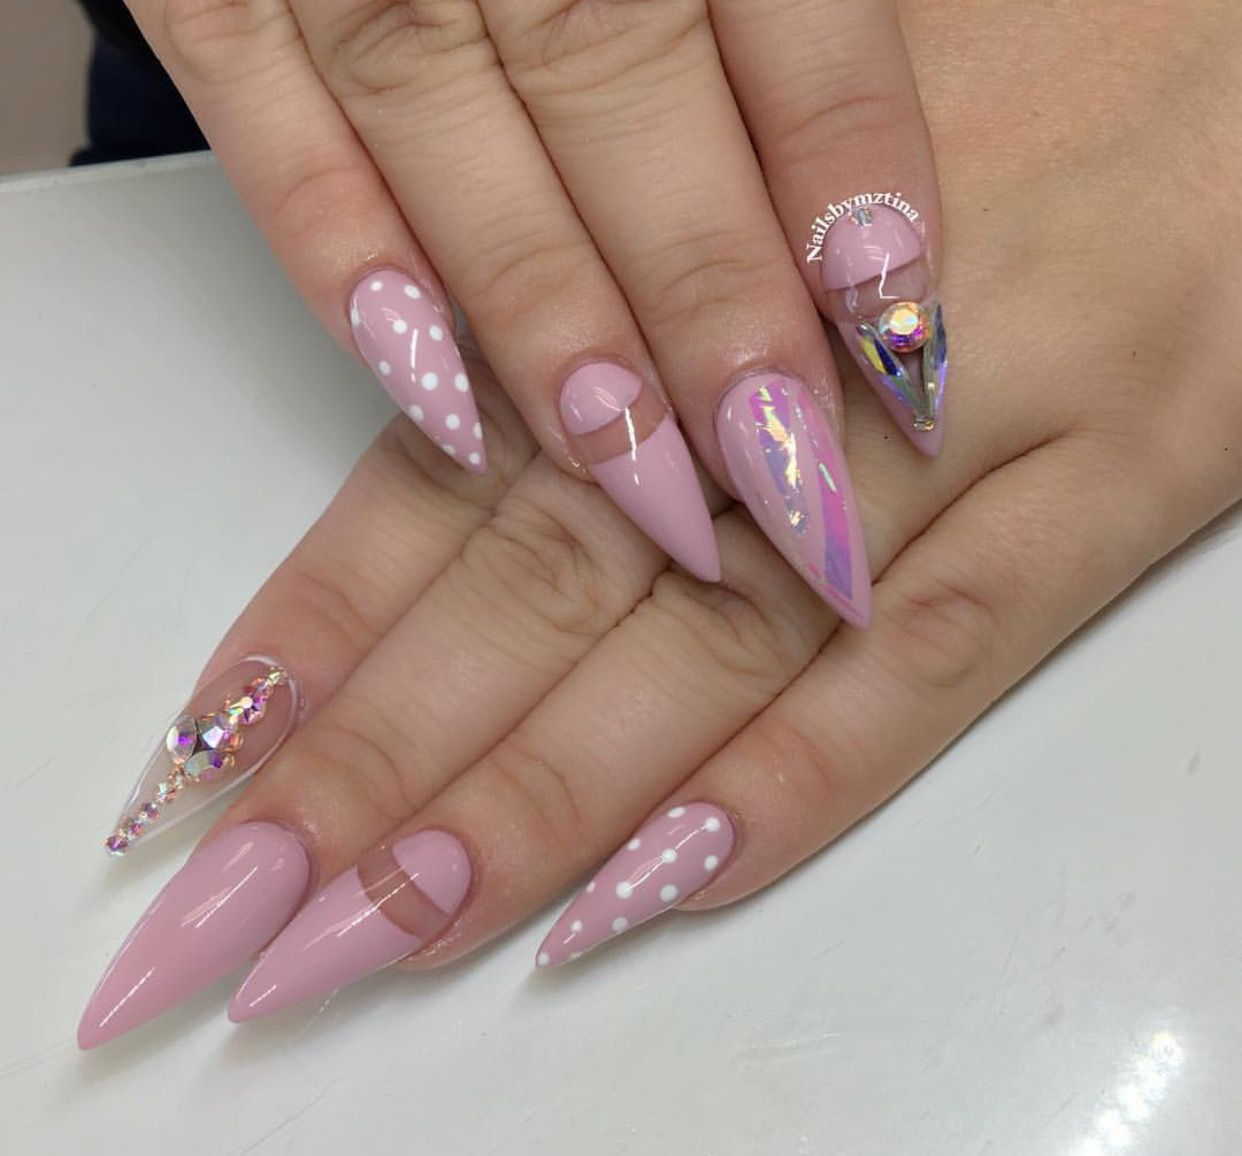 Pin von Ruben Carrillo auf Ovel & Stiletto Nails | Pinterest